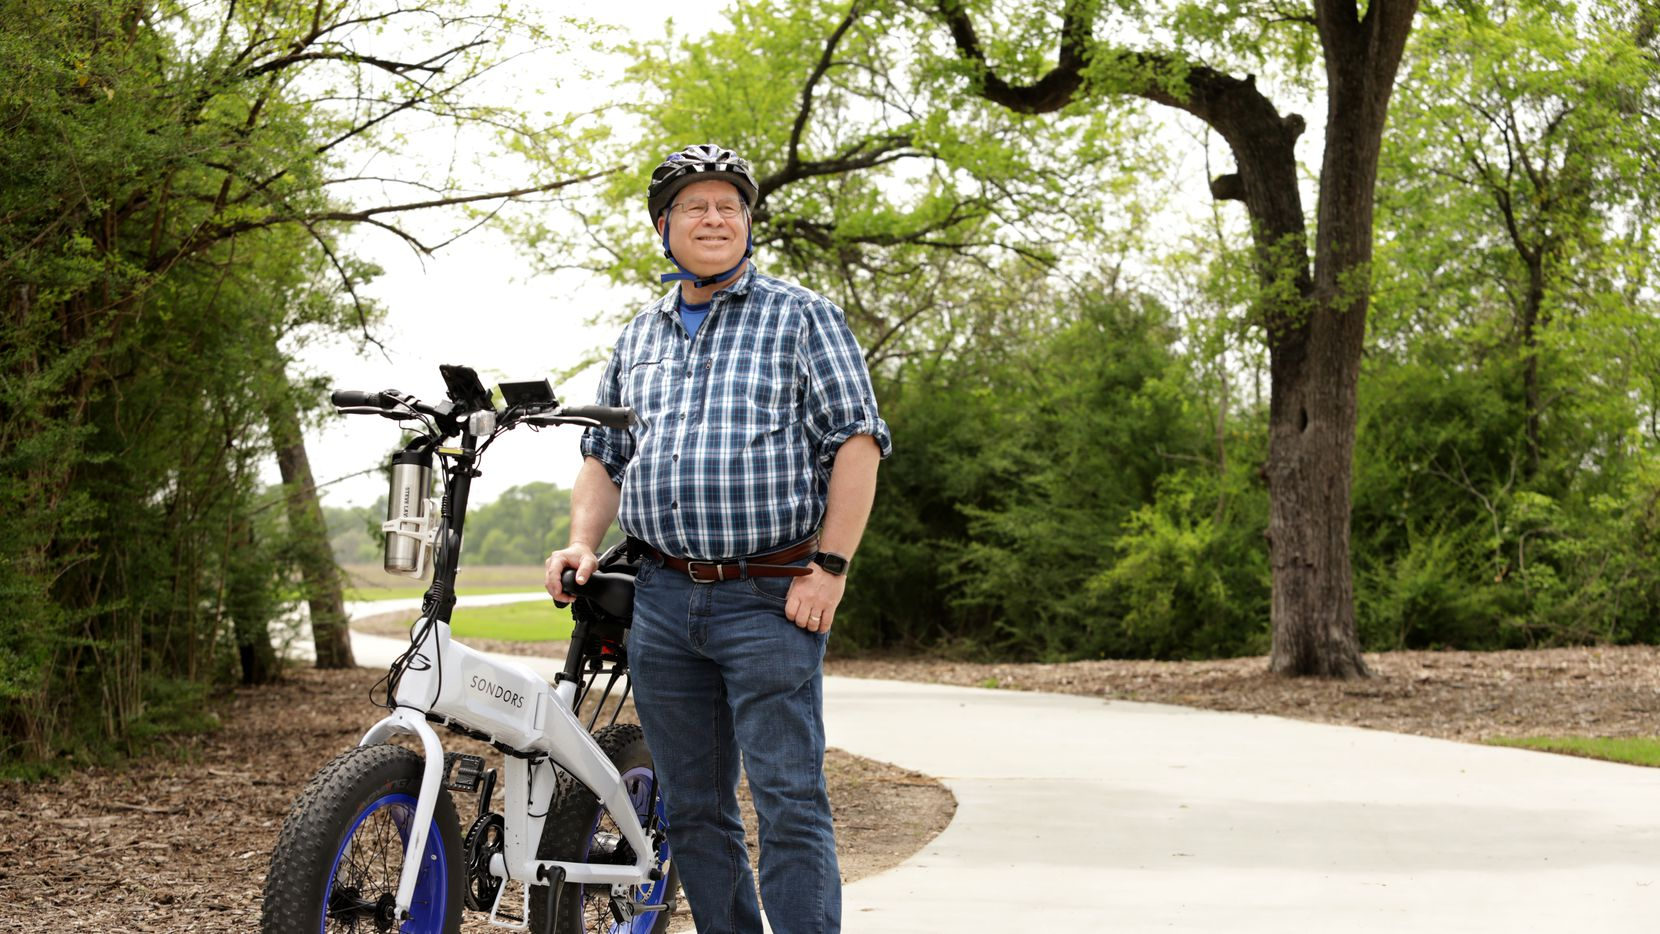 Steve Lavine finds he uses his electric bike far more than his road bike.